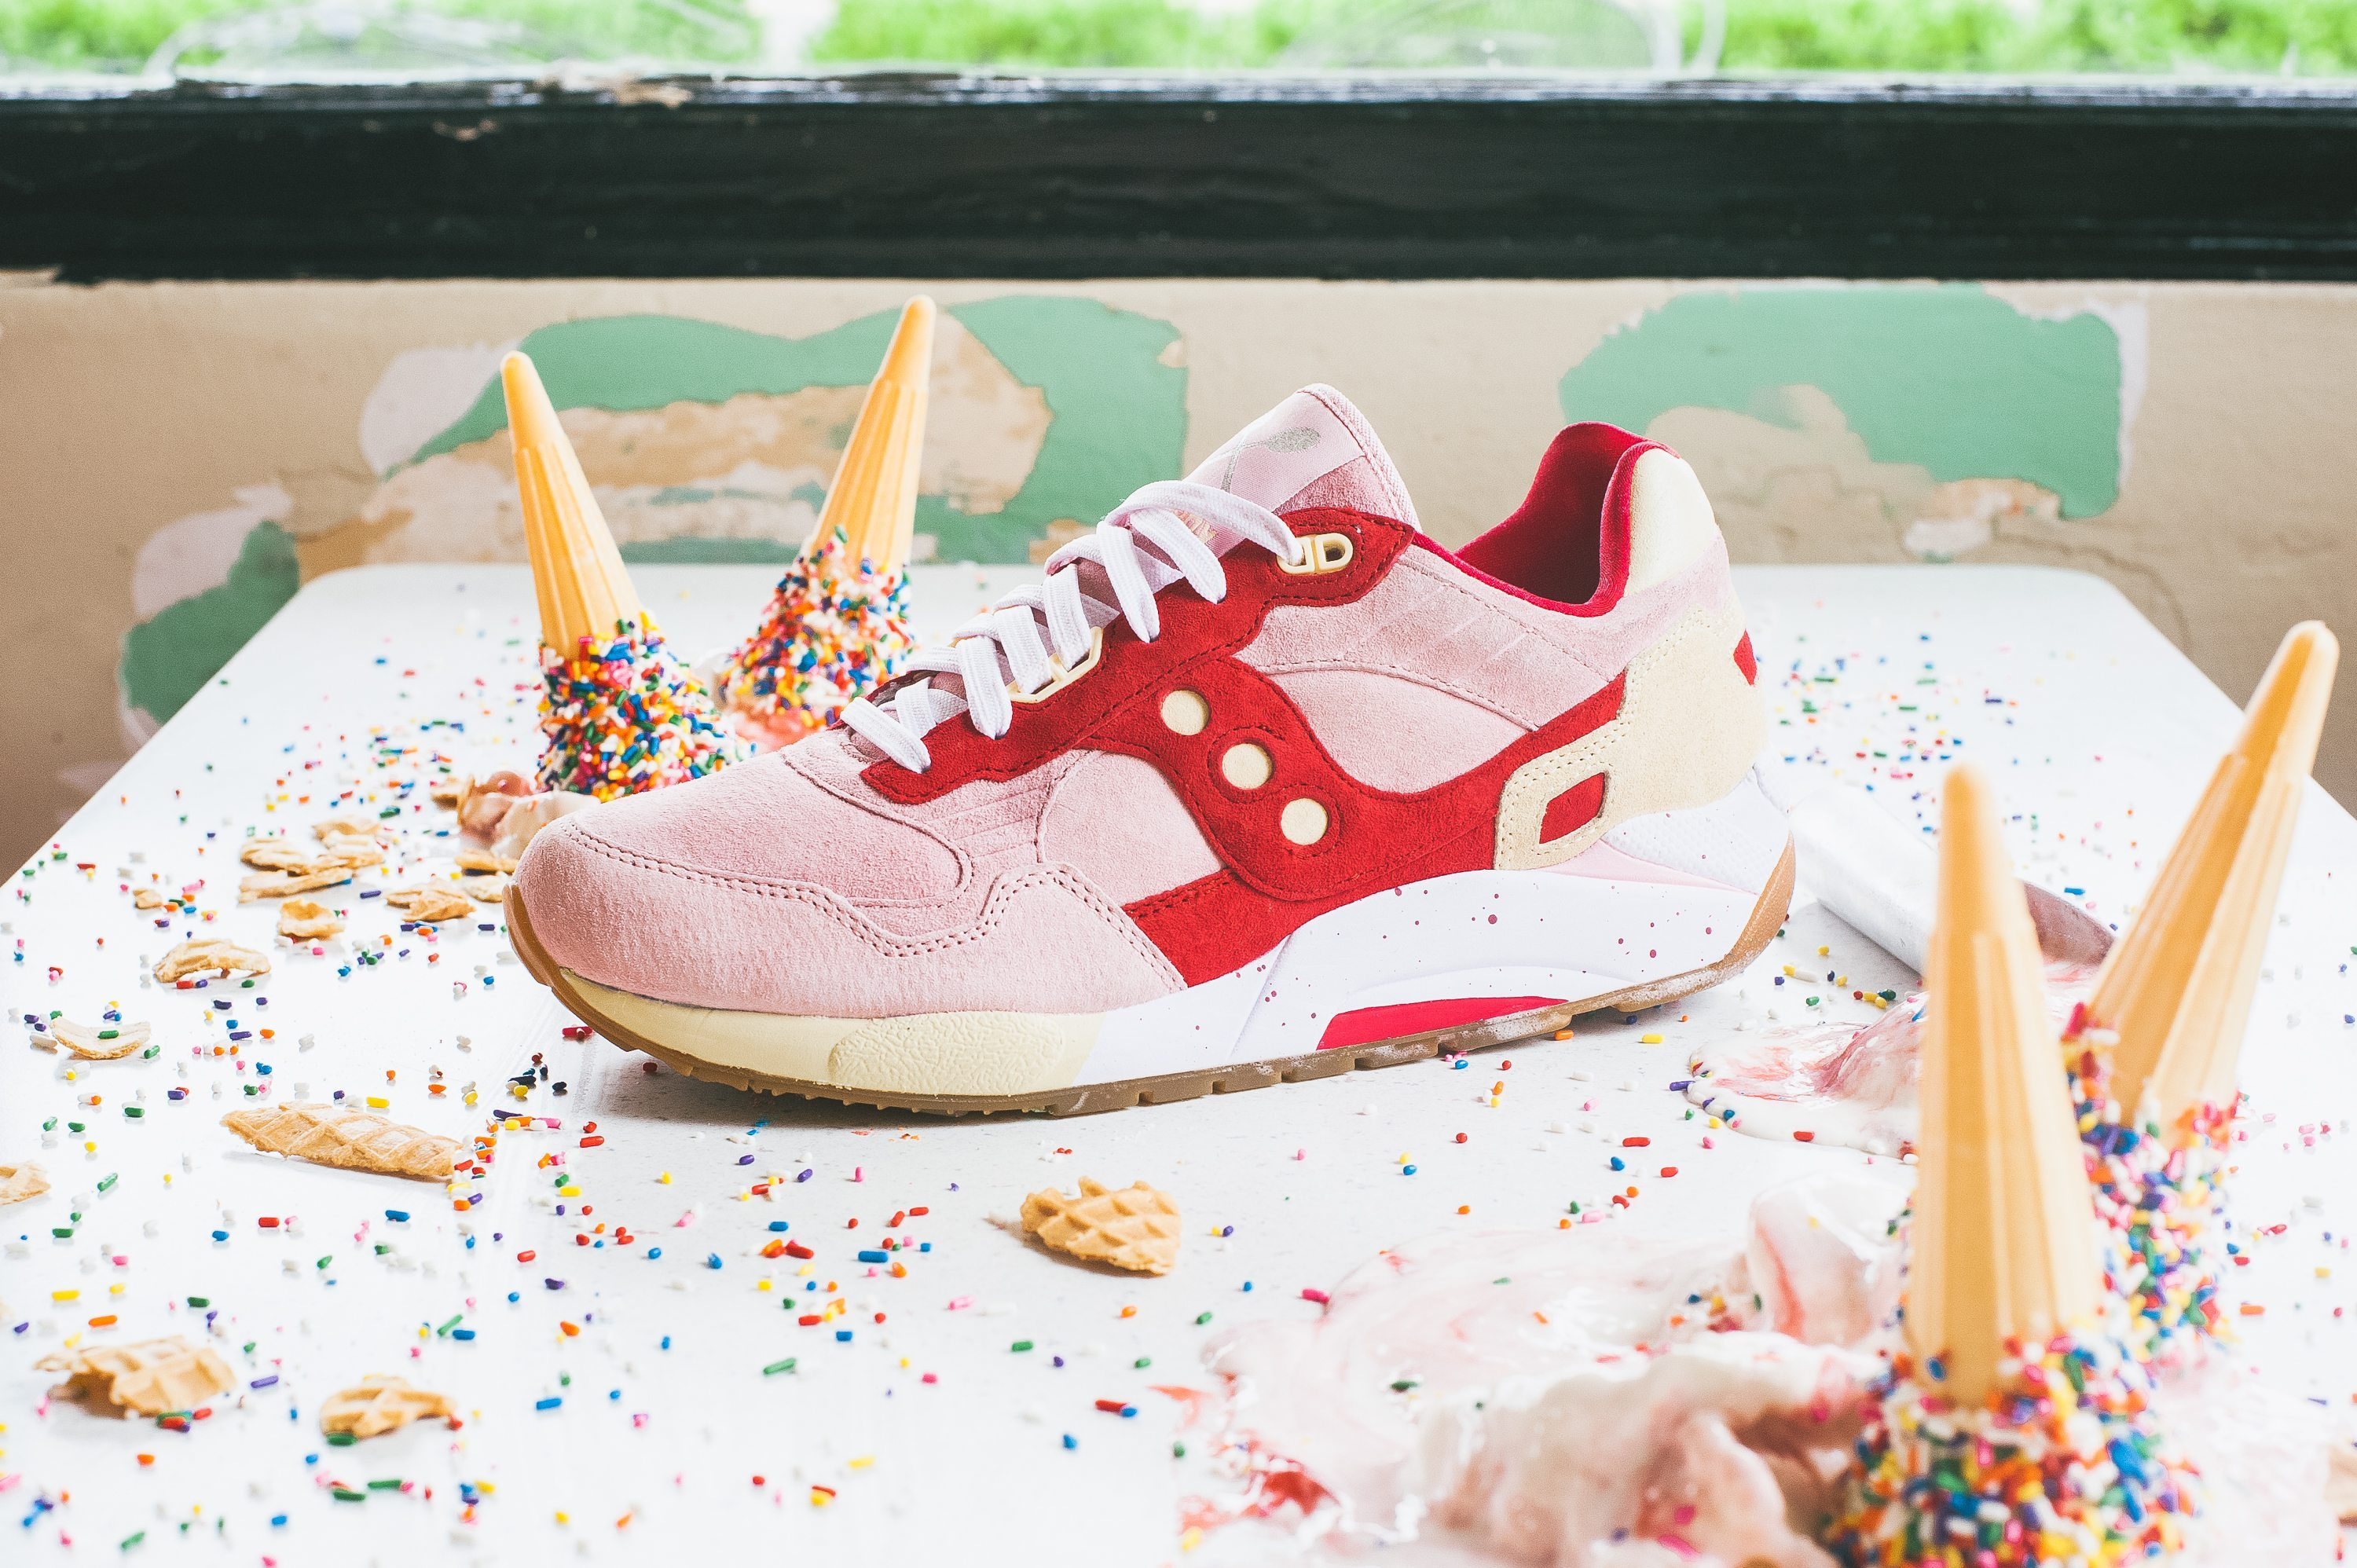 Saucony Originals Scoops Pack G9 Shadow 5 Strawberry Vanilla 4